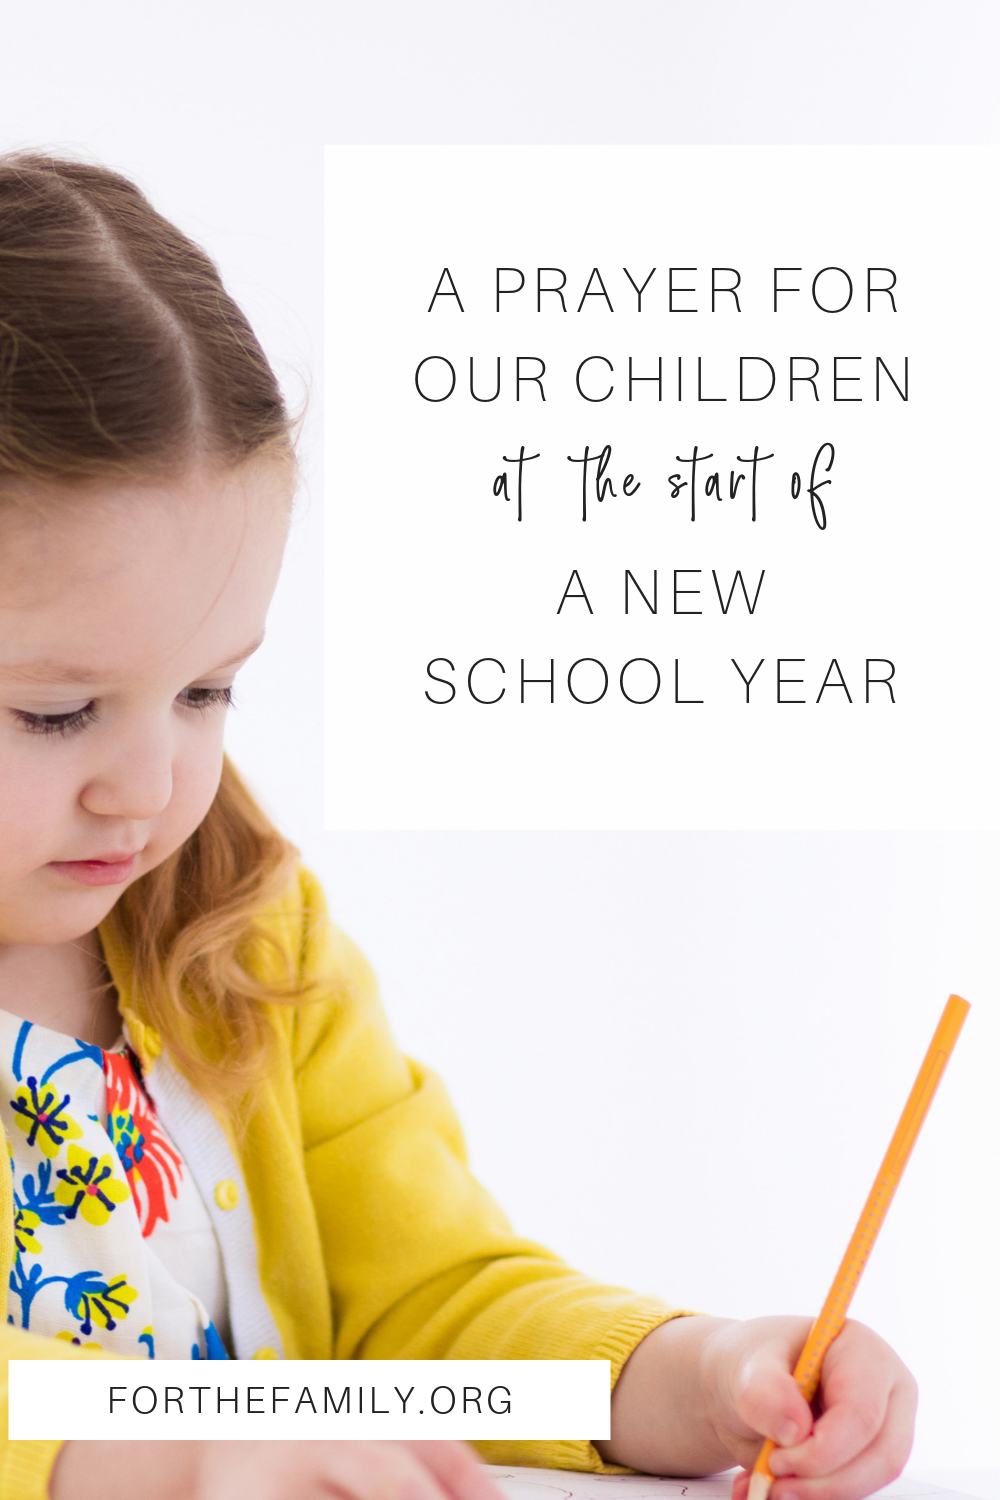 The new school year is beginning, and more than fresh pencils, new notebooks and spiffy clothes, our children need a blessing this year. Join us today in prayer for the beginning of this season!